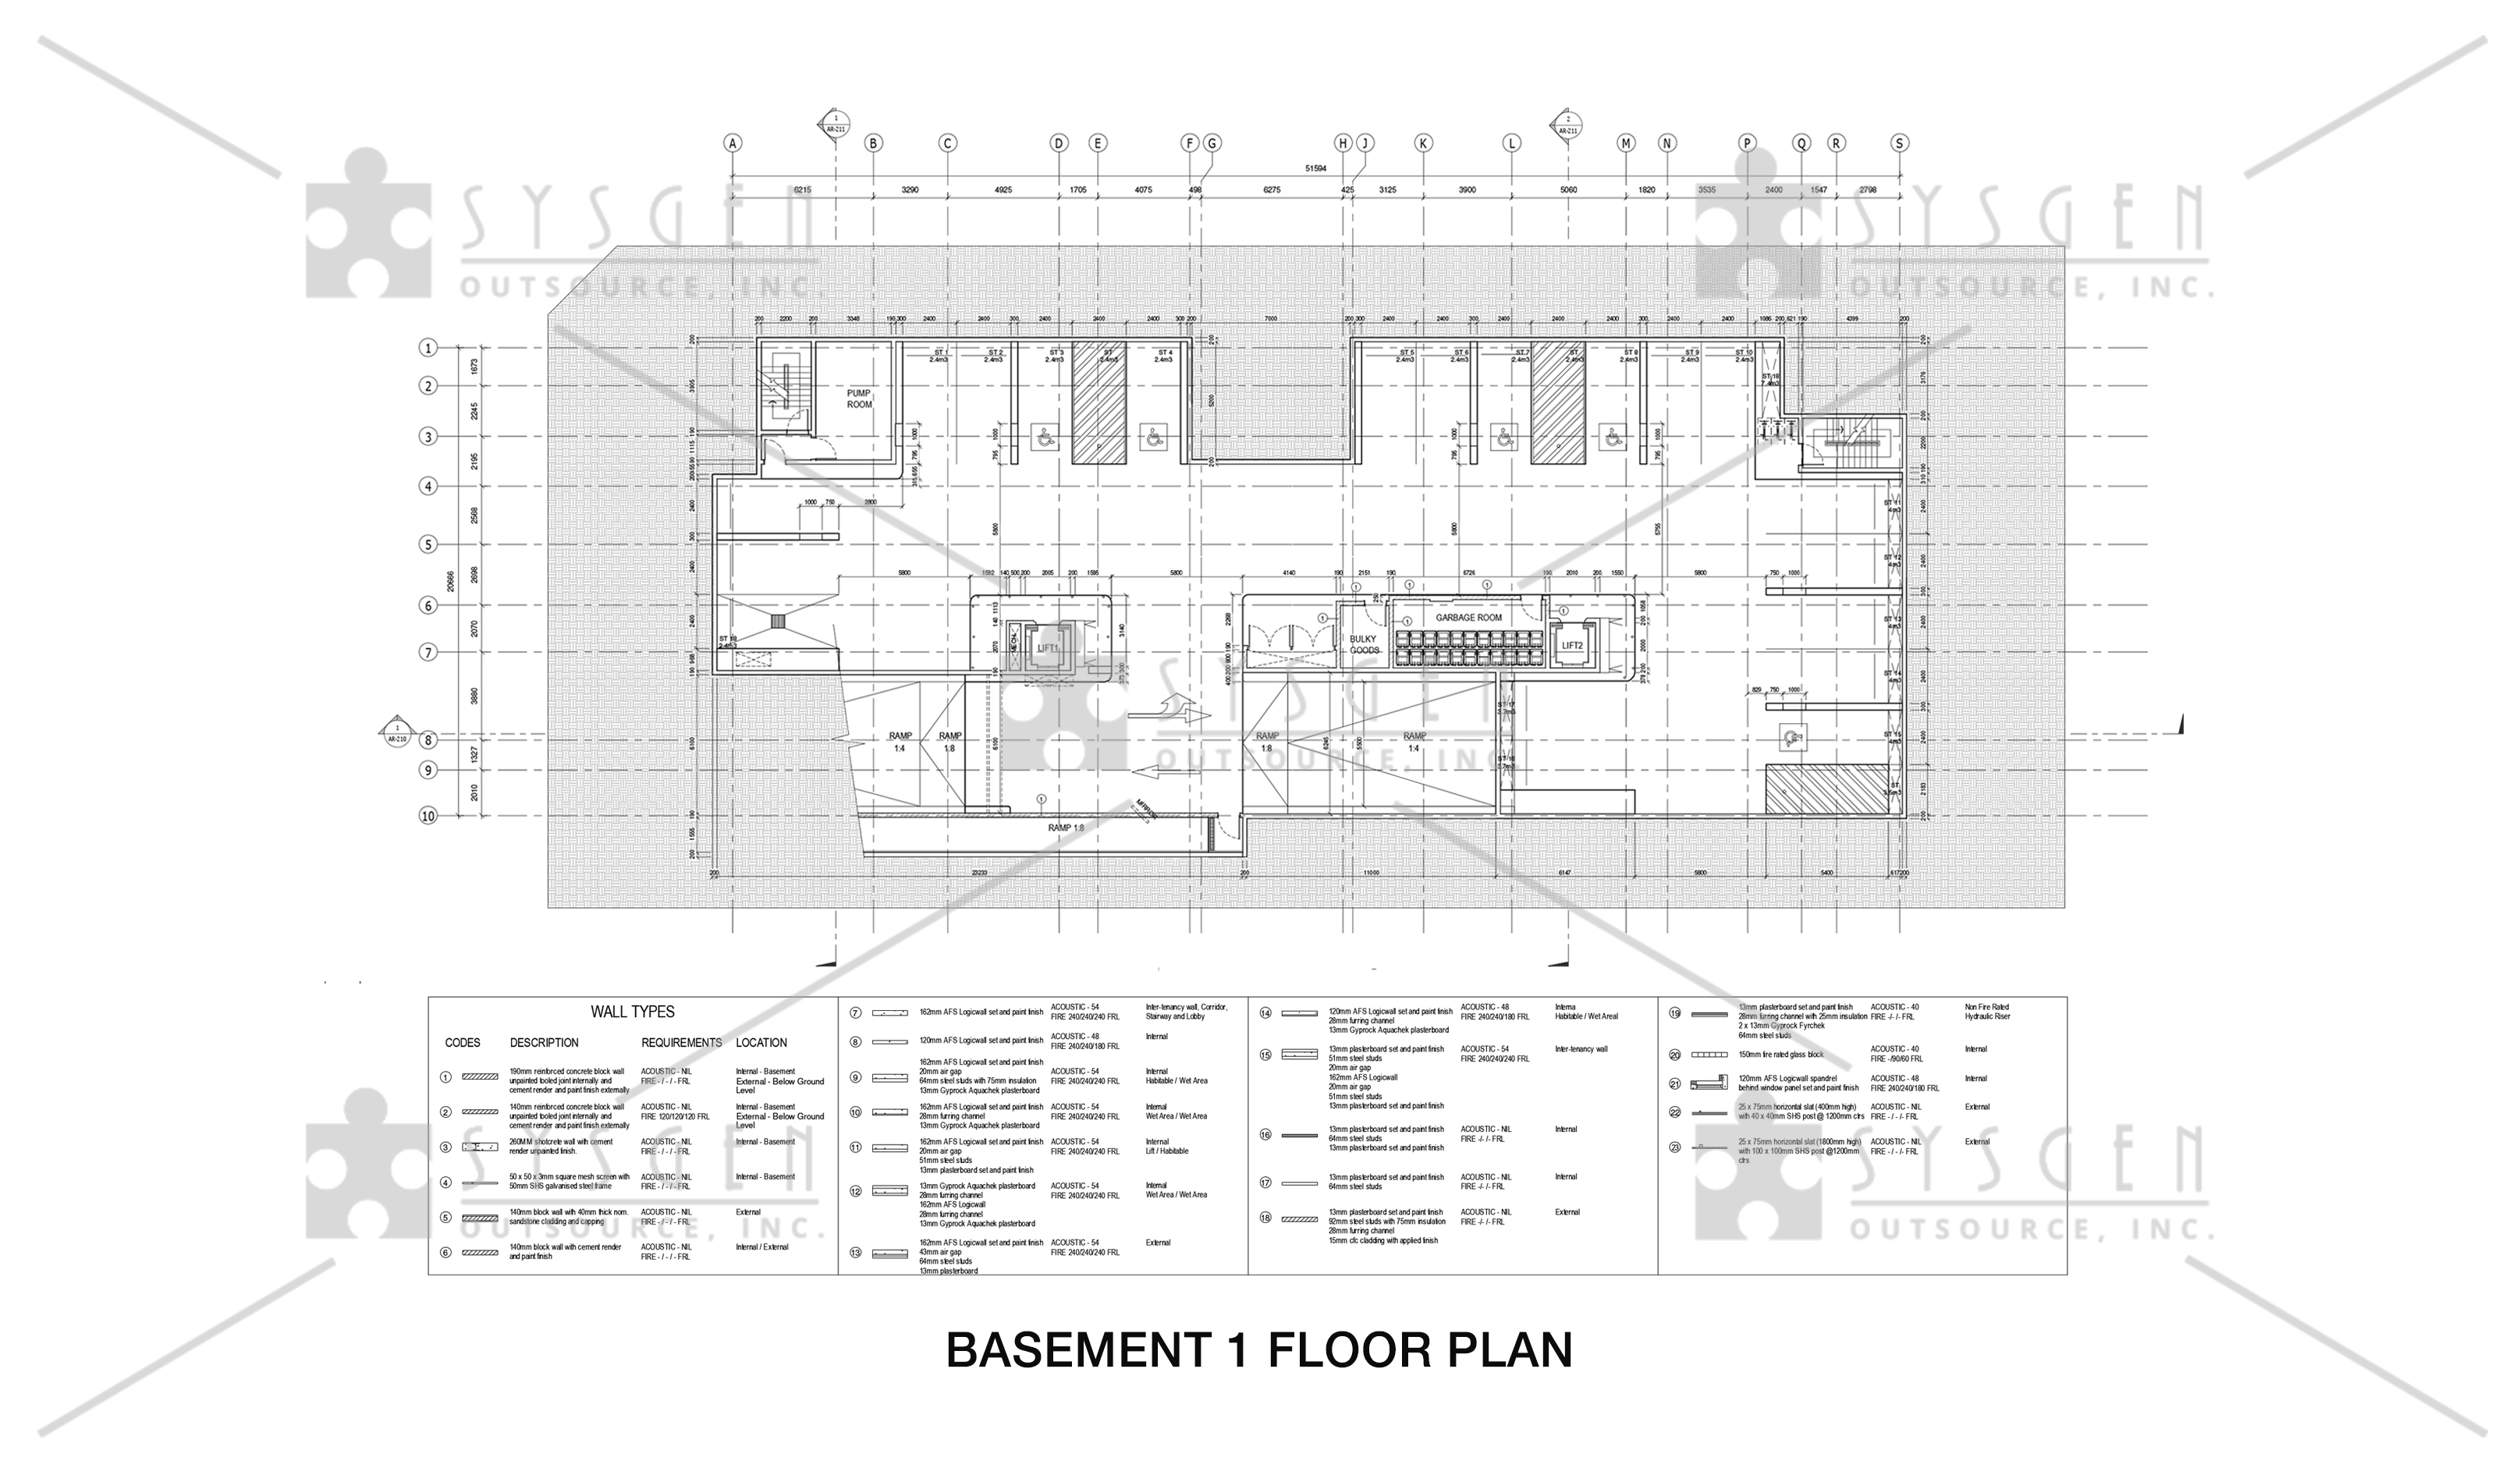 sysgen-outsource-cad-outsourcing-services-cad-conversion-revit-4-storey-residential3